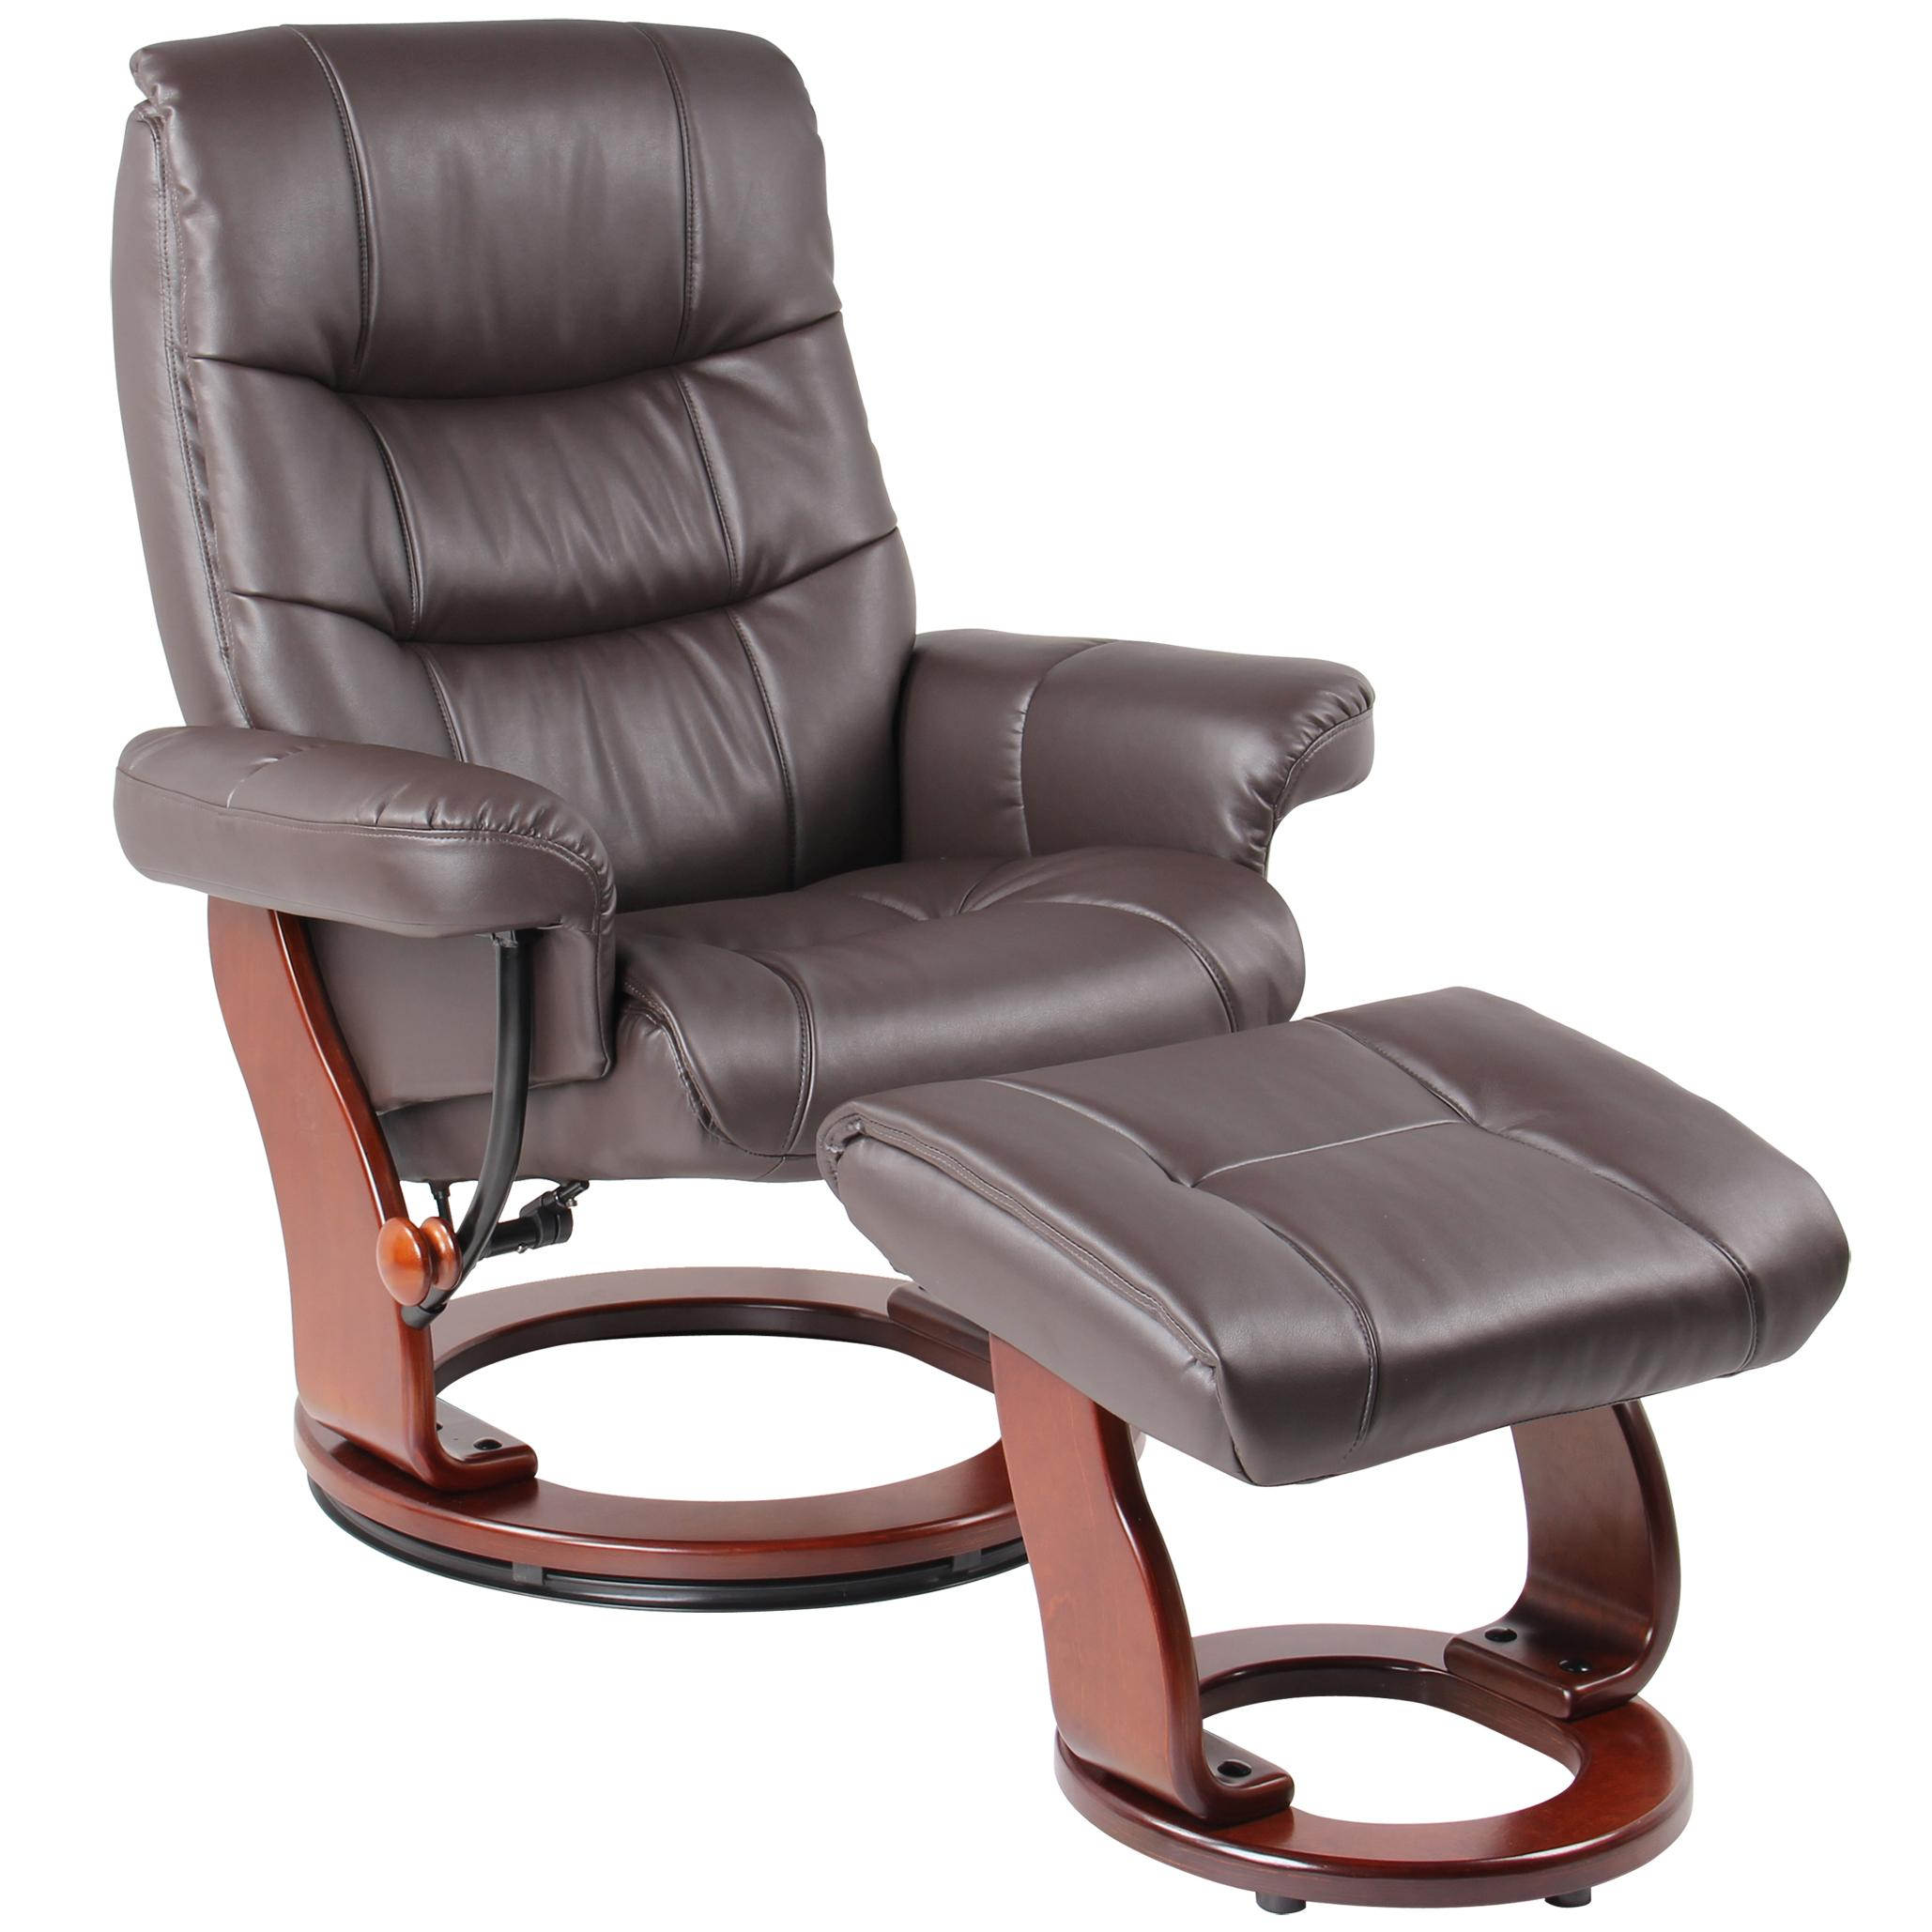 Benchmaster Emmie Casual Emmie Lounger - Item Number: 7581F Chocolate